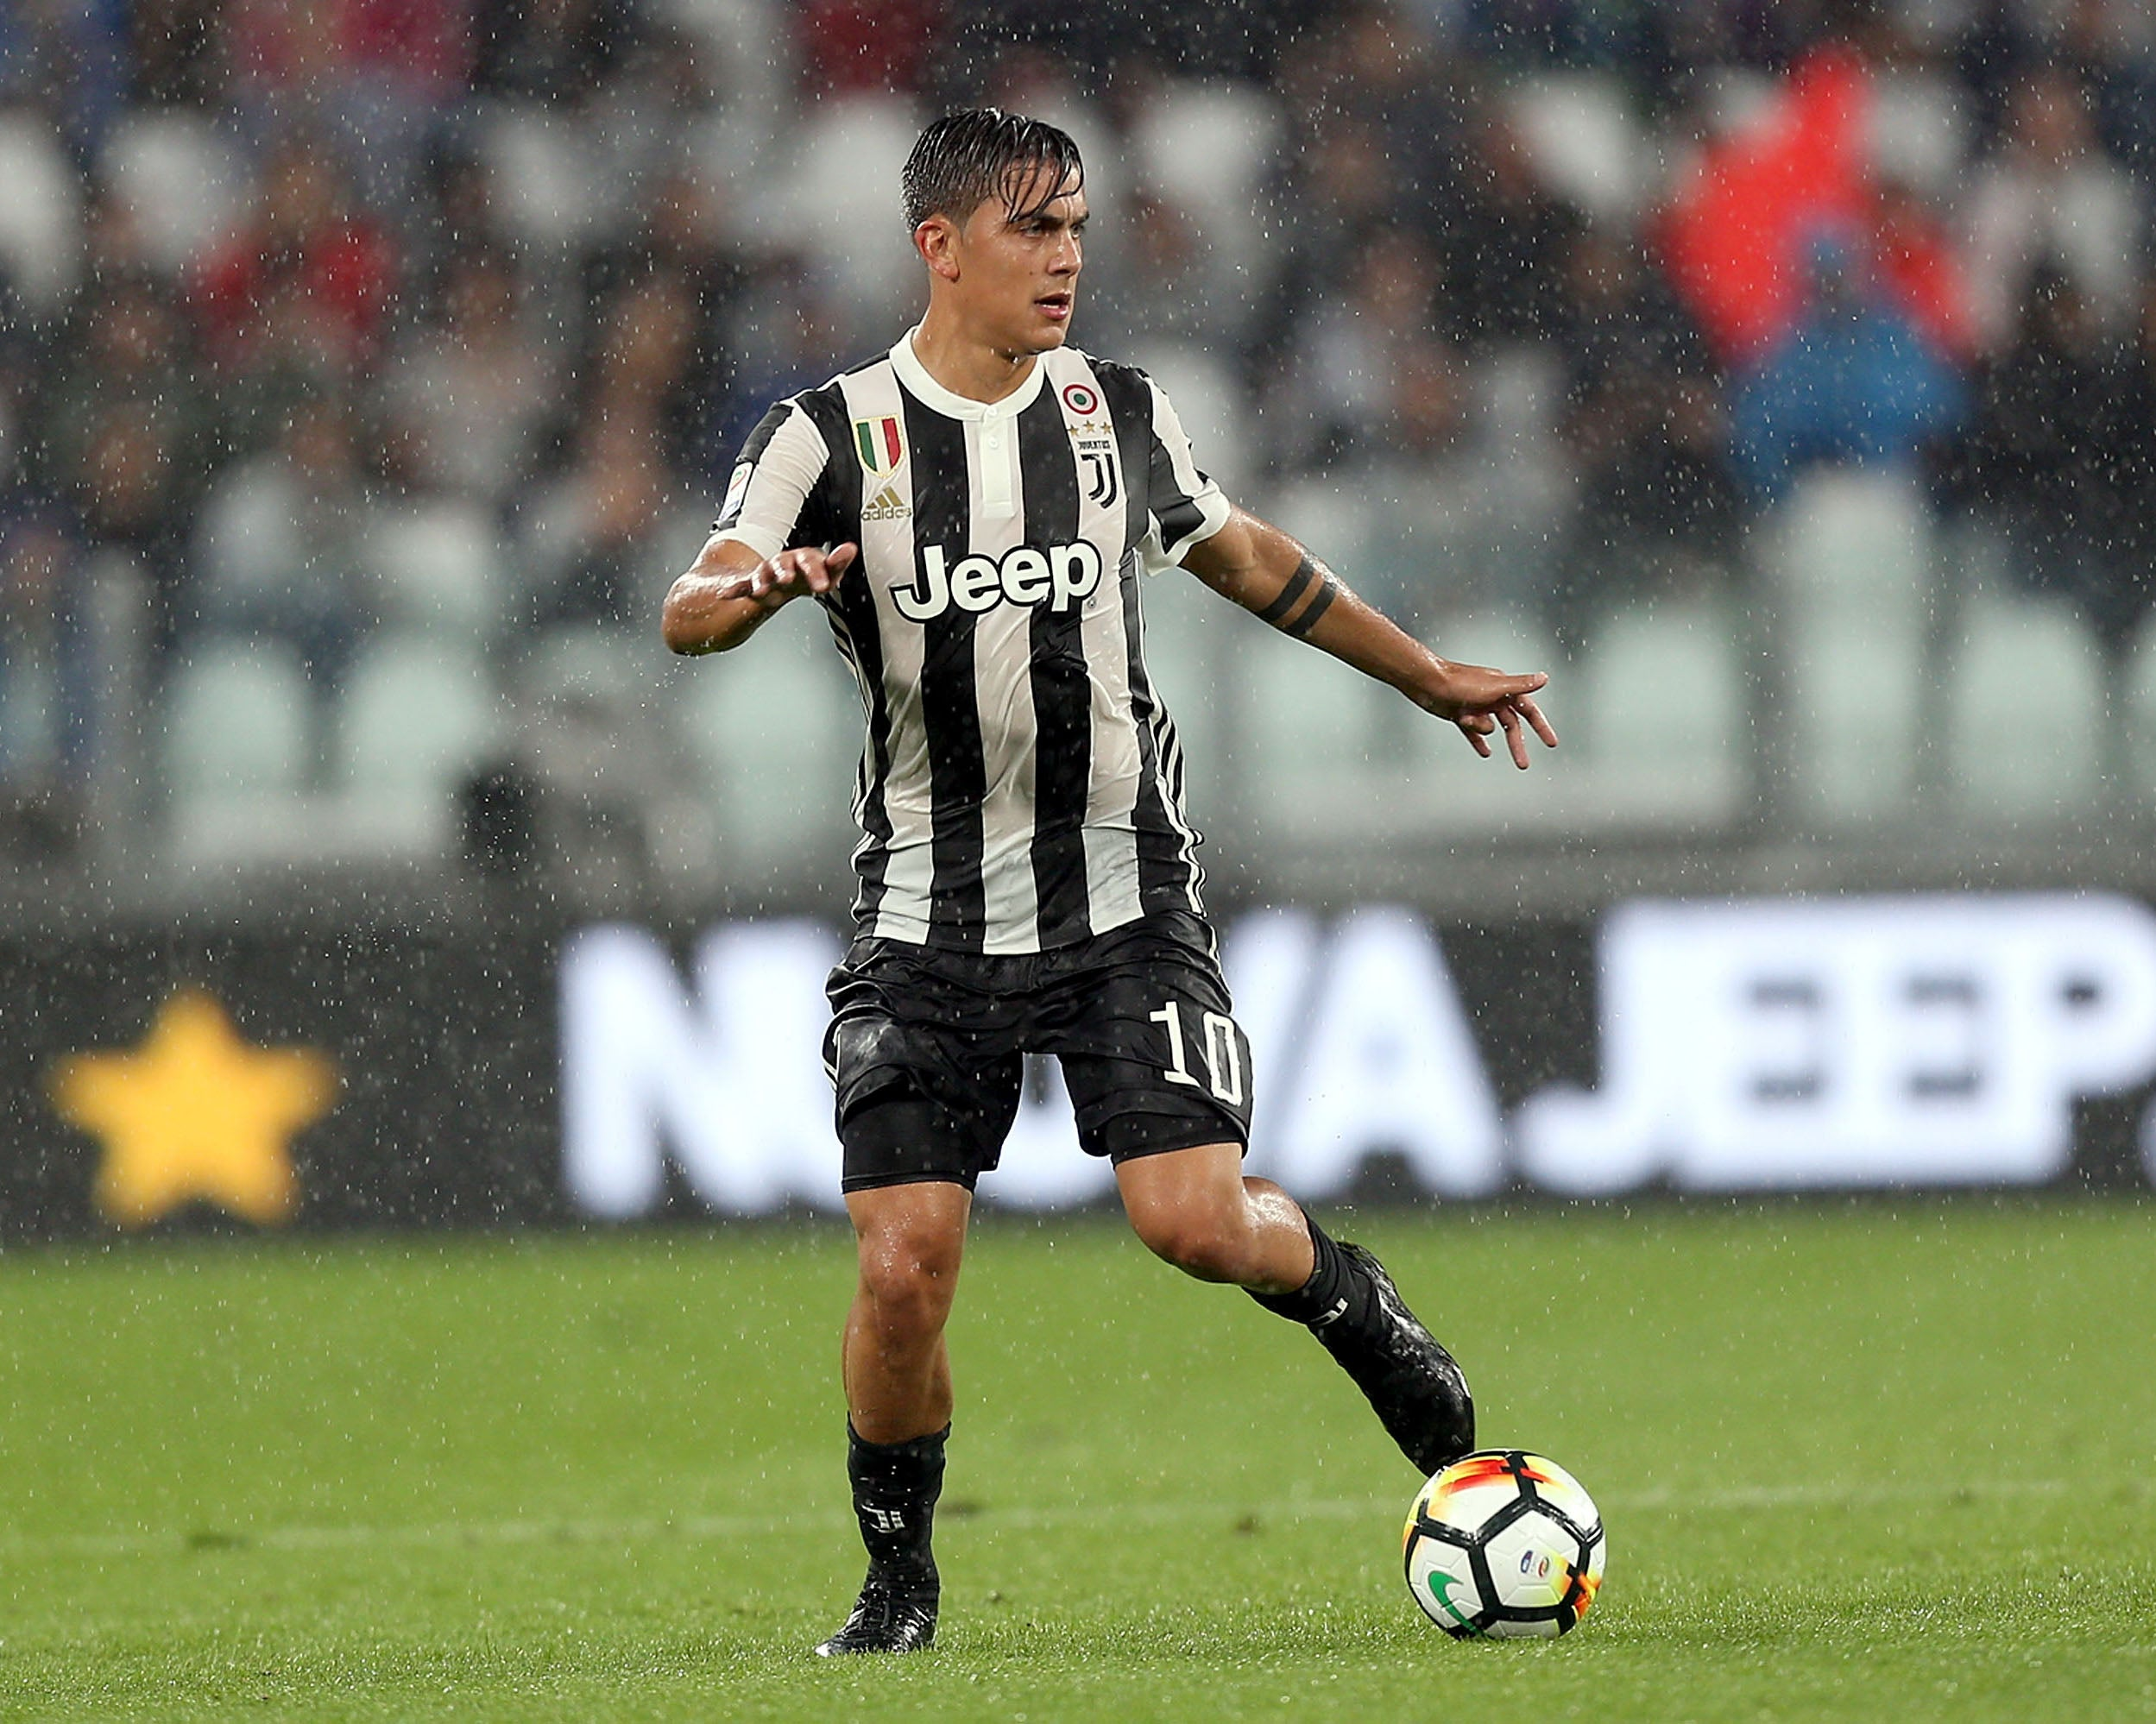 paulo dybala will leave juventus for manchester united independent insurance agent logo download independent insurance agent logo